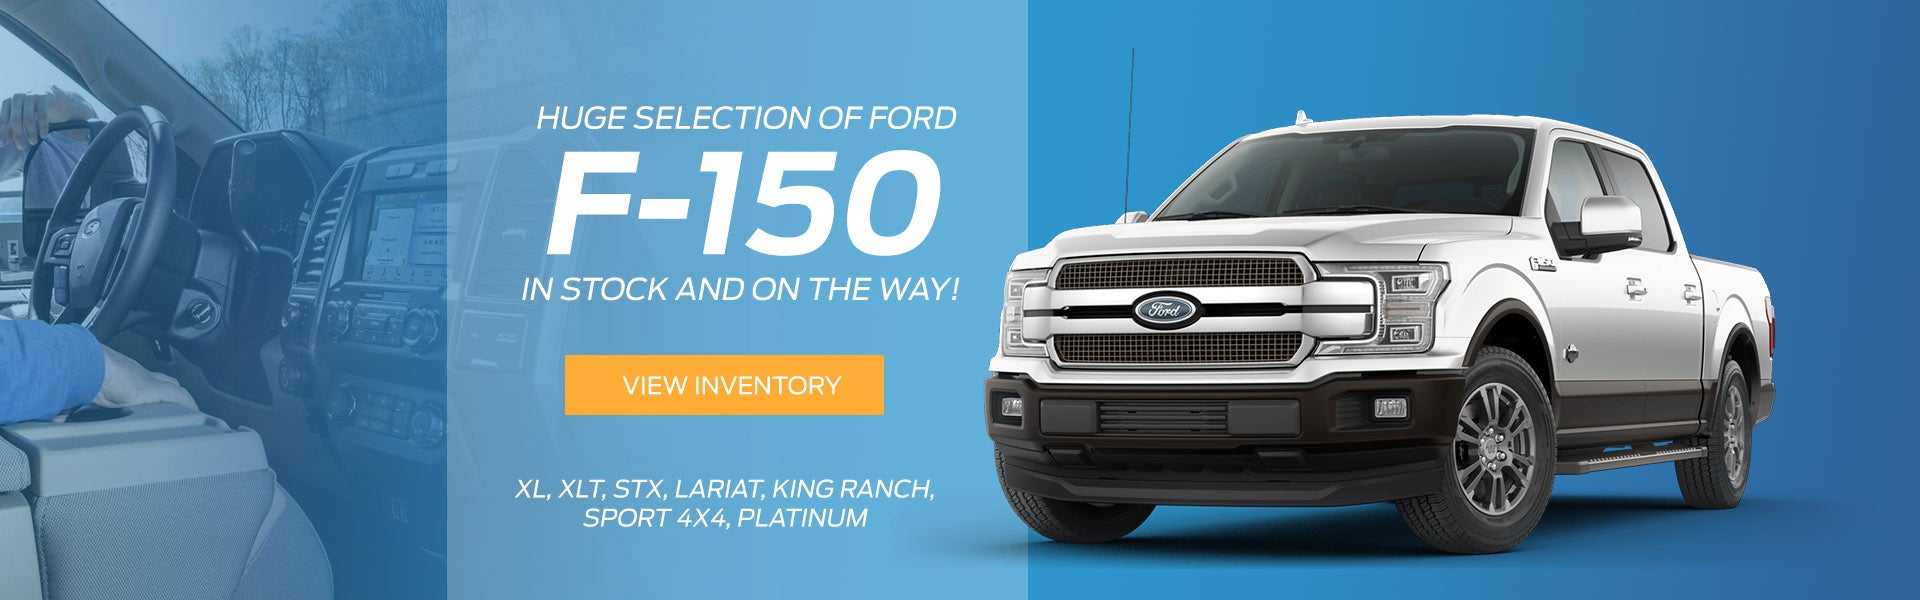 Ford Dealers In Ga >> Tyrone Ford Dealer In Tyrone Pa State College Huntingdon